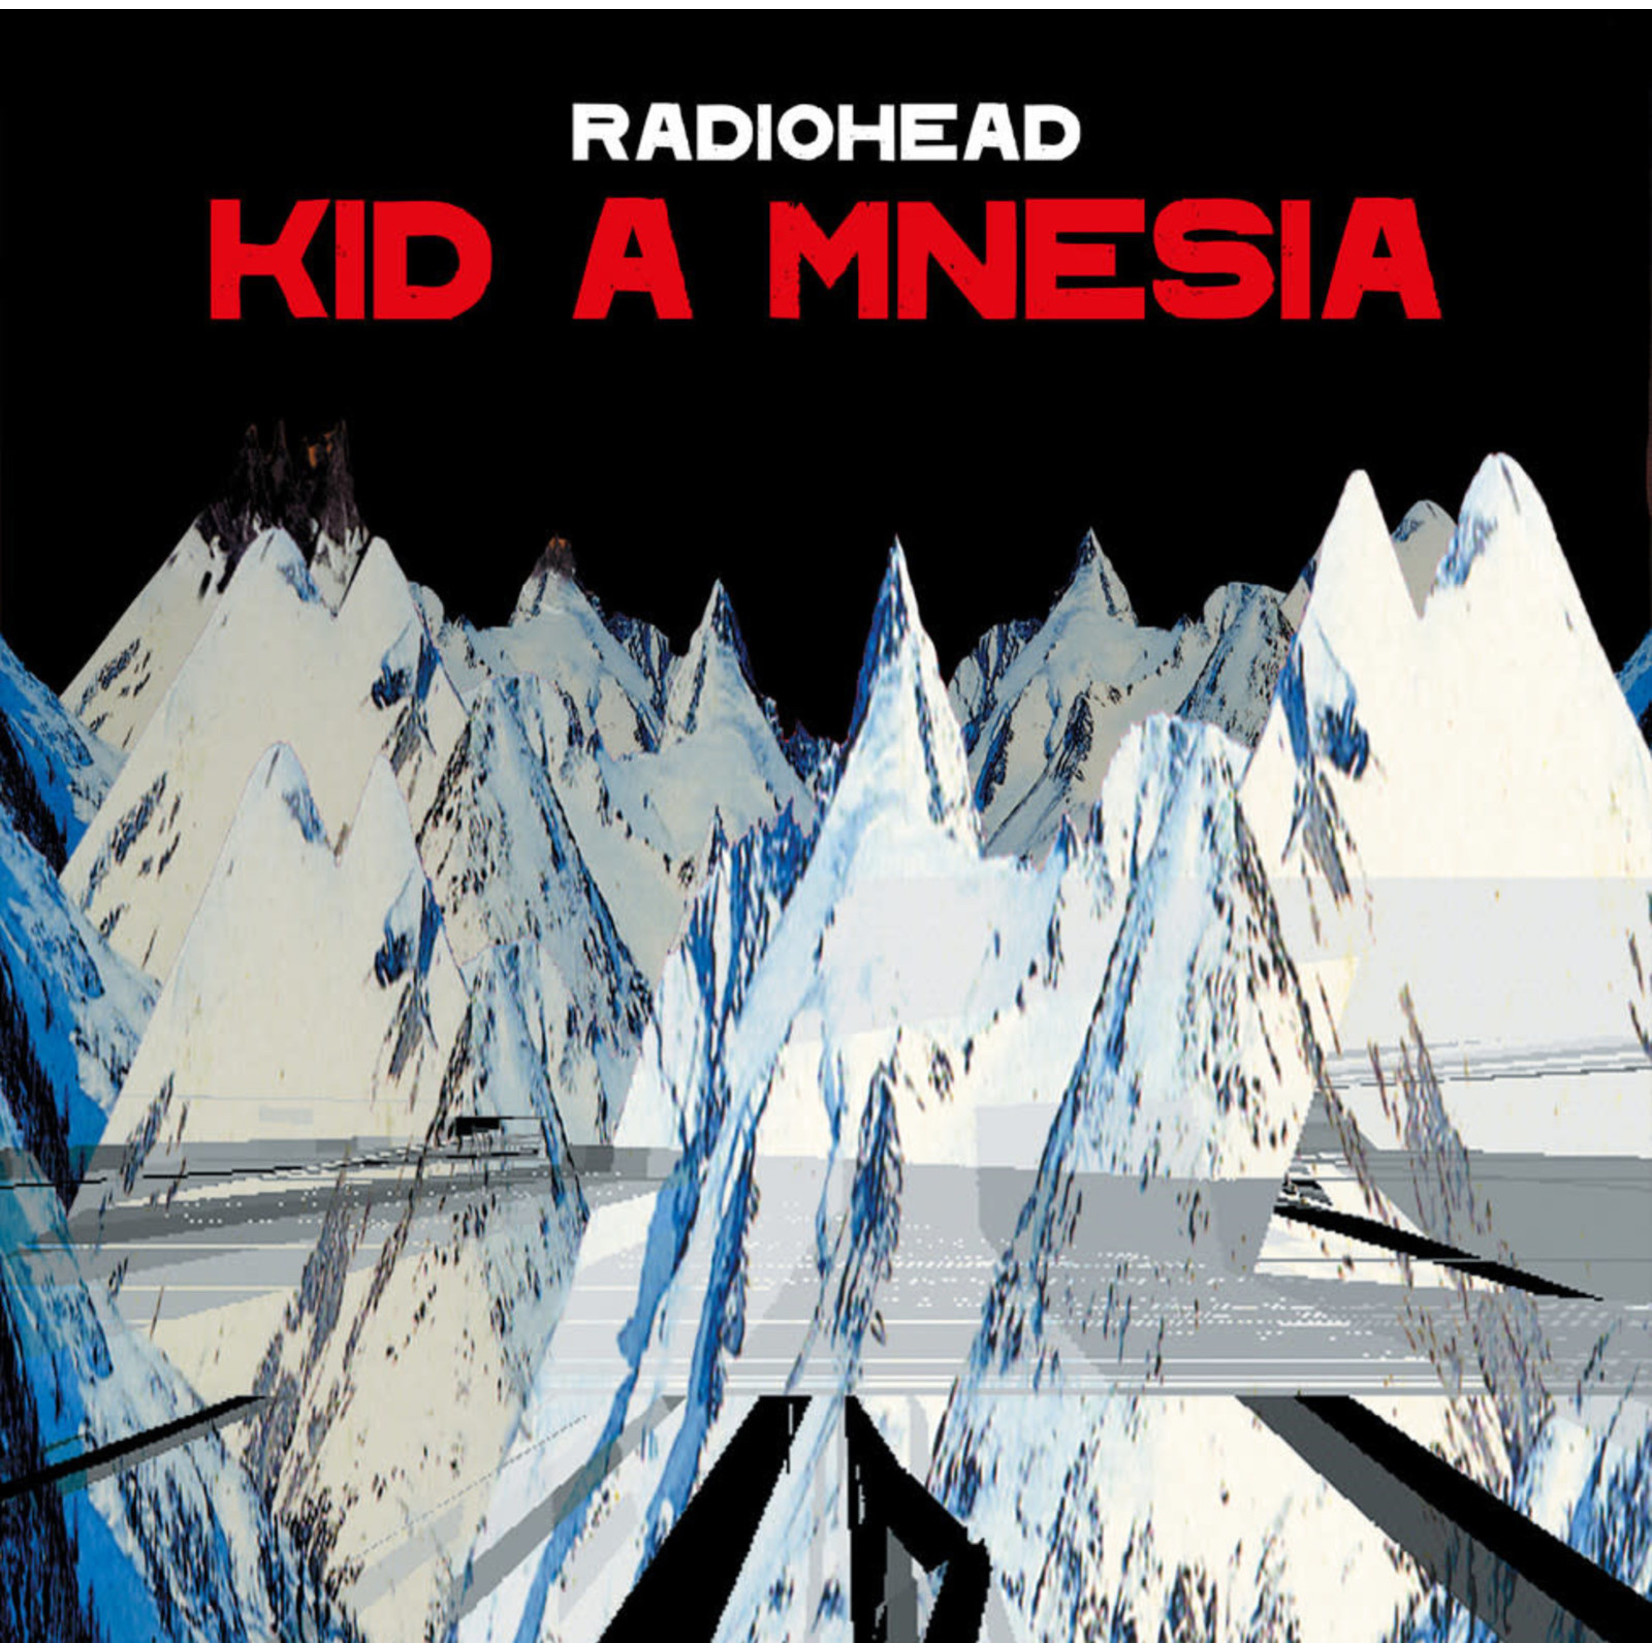 [New] Radiohead: Kid A Mnesia (3LP/Red/limited) [XL RECORDINGS]